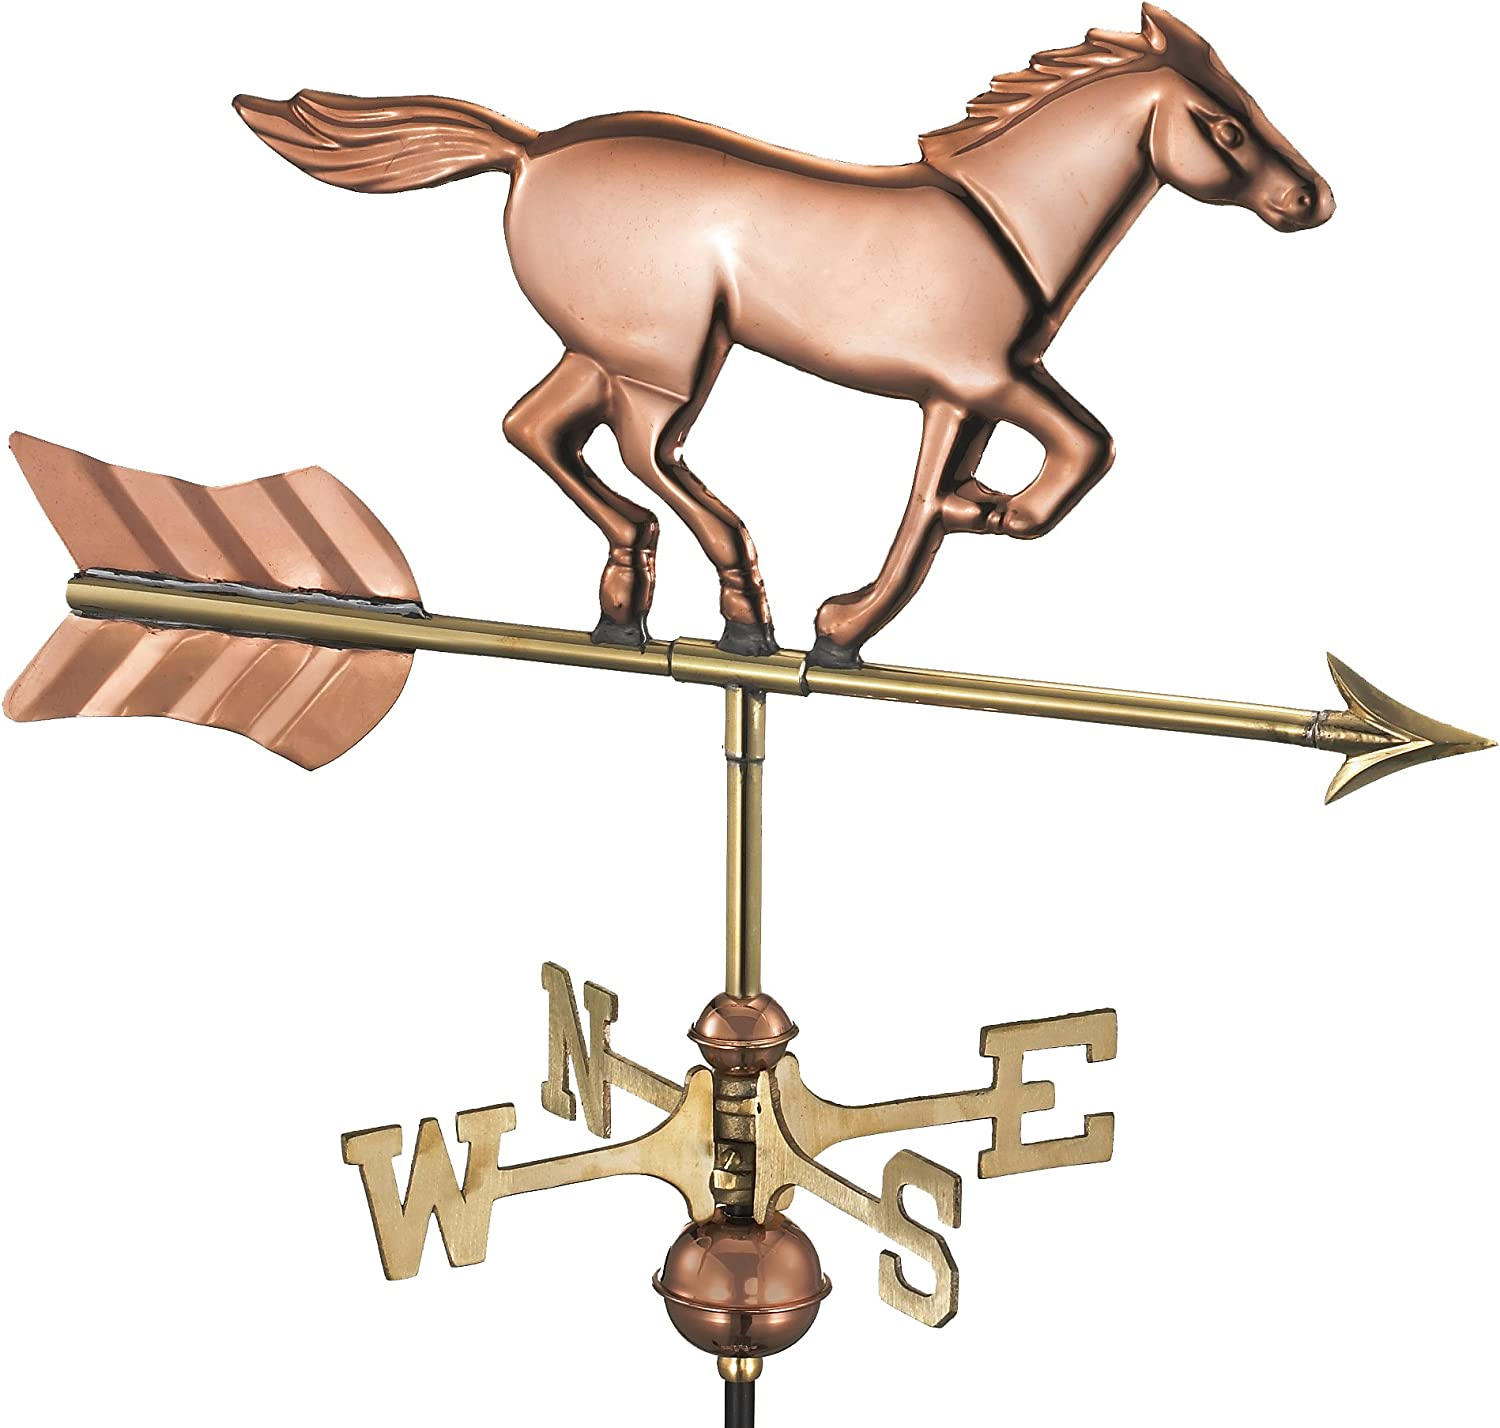 Good Directions 801PG Horse Garden Weathervane, Polished Copper with Garden Pole